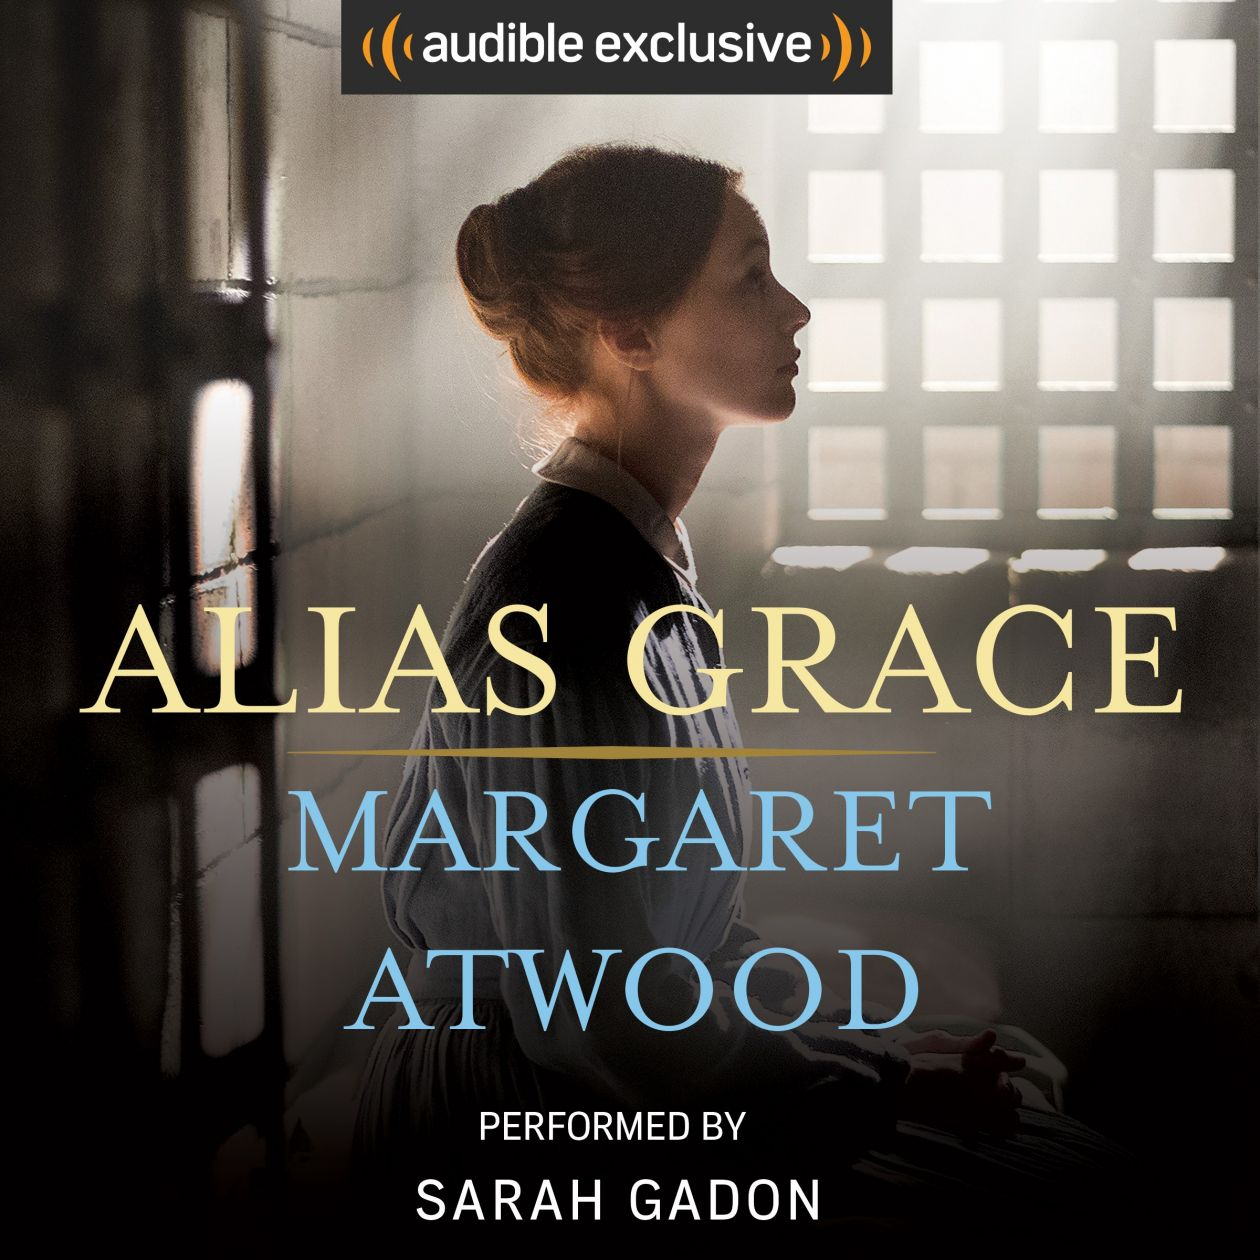 Sarah Gadon | Audiobook / English | Alias Grace / Margaret Atwood | Audible / 15 hours 56 minutes